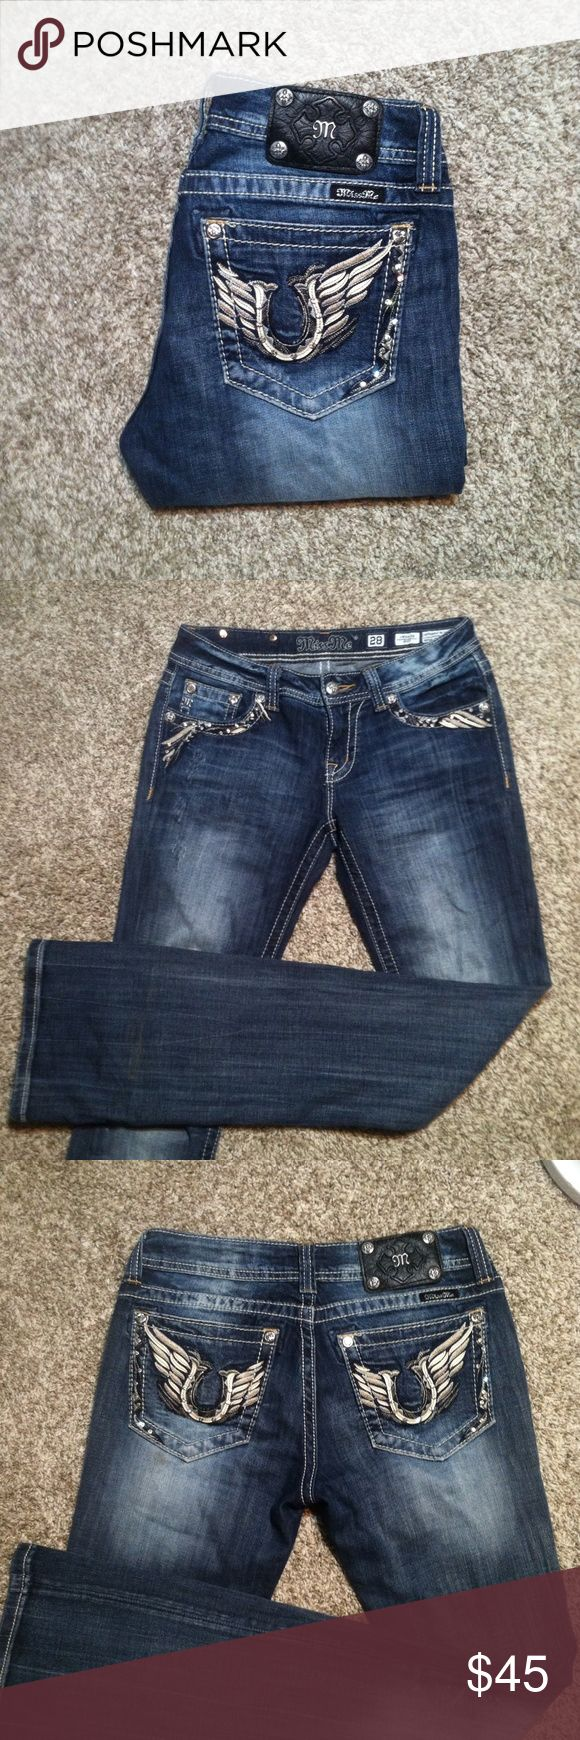 \ \ MISS ME BOOTCUT JEANS >Miss Me bootcut jeans >>size 28 >gently worn but in excellent condition; no flaws   Same/next day shipping! Pet/smoke free home! Offers welcome! Bundle & save!!  Thanks for looking, xo💋 Miss Me Jeans Boot Cut